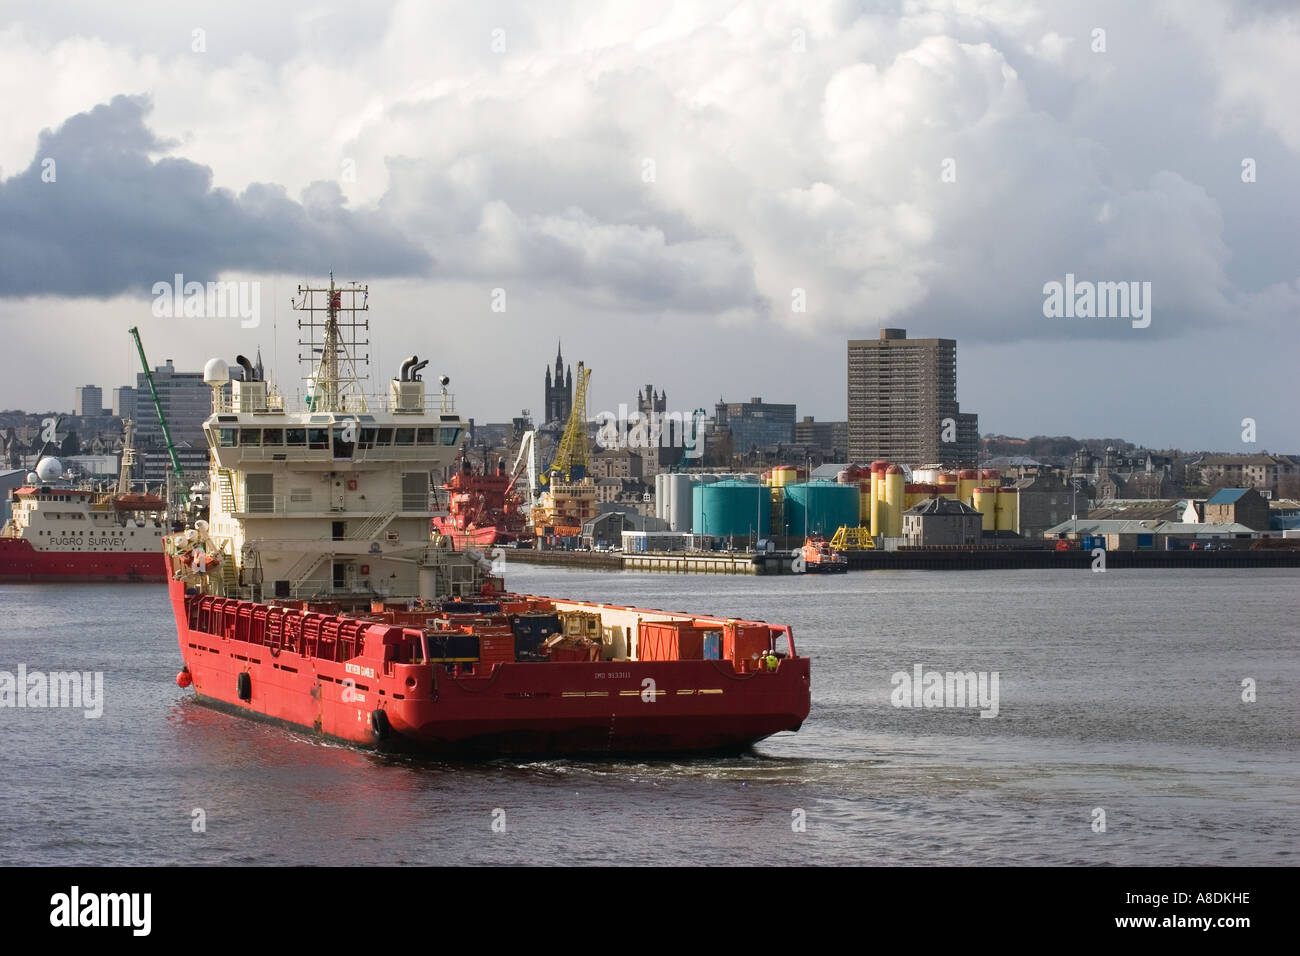 Unusual Cloud formation at Aberdeen Harbour with the City Centre Beyond, Aberdeenshire, Scotland uk - Stock Image